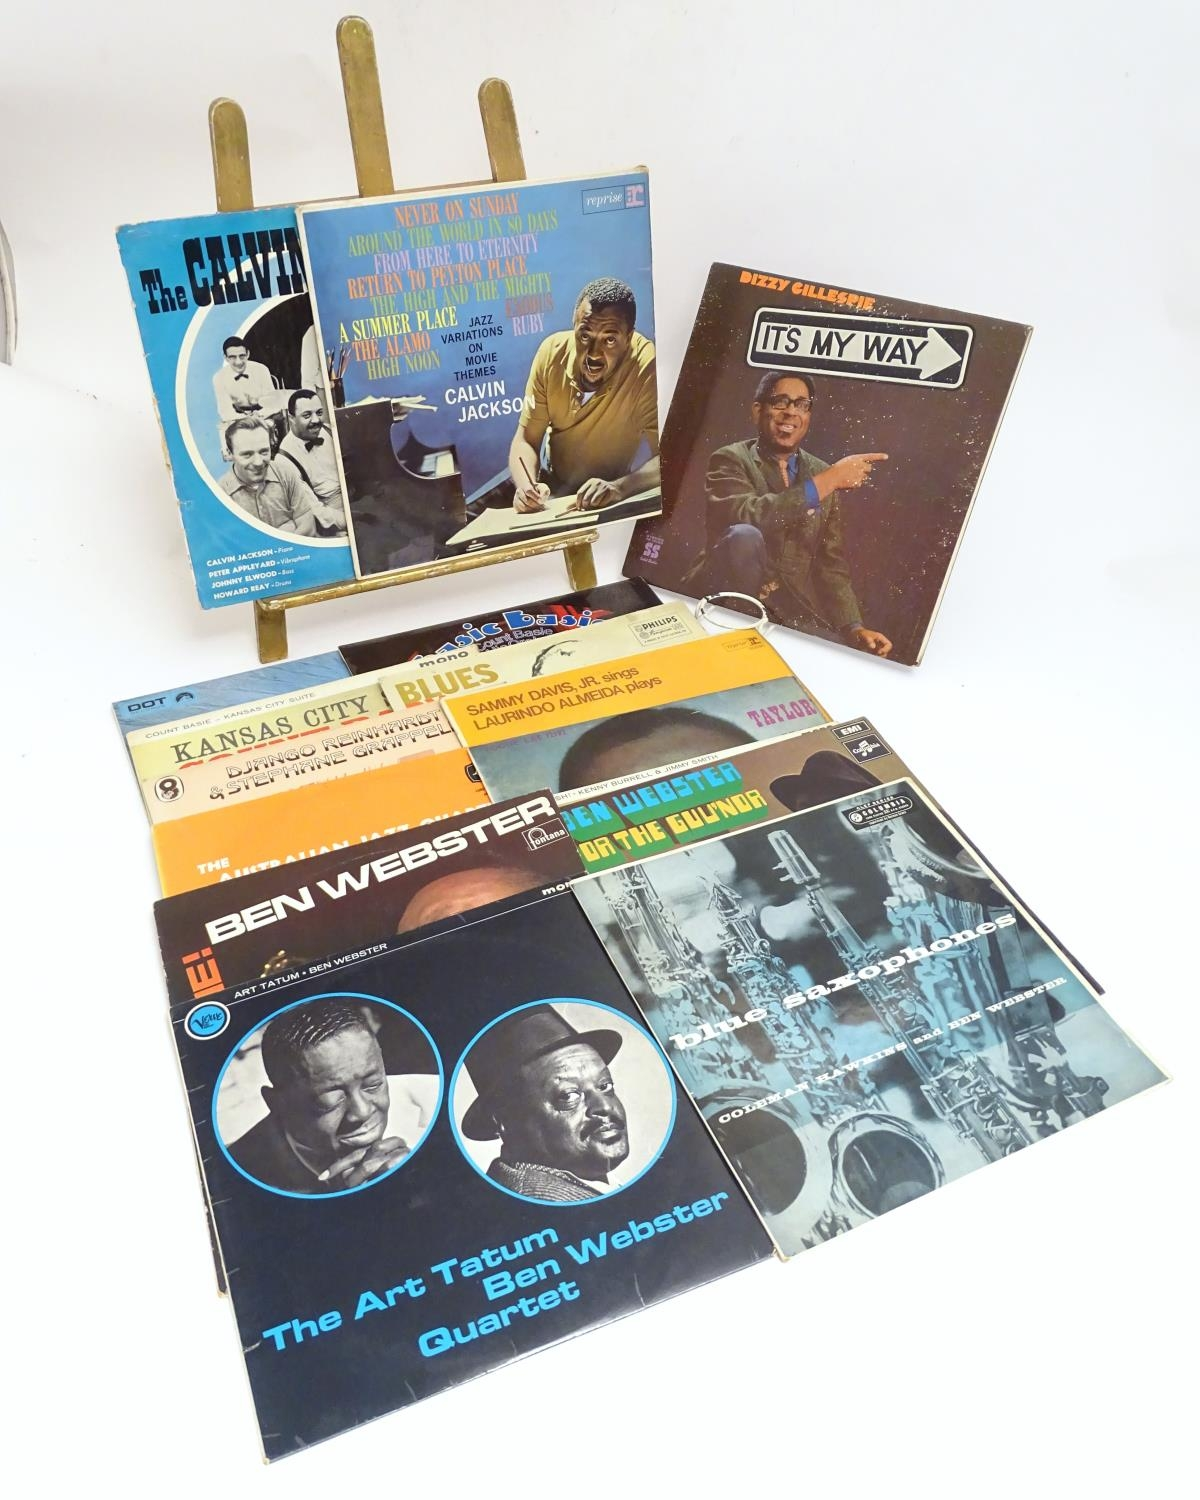 A collection of 20thC 33 rpm Vinyl records / LPs, - Jazz, comprising: The Eddie Condon Floor Show 2, - Image 6 of 19